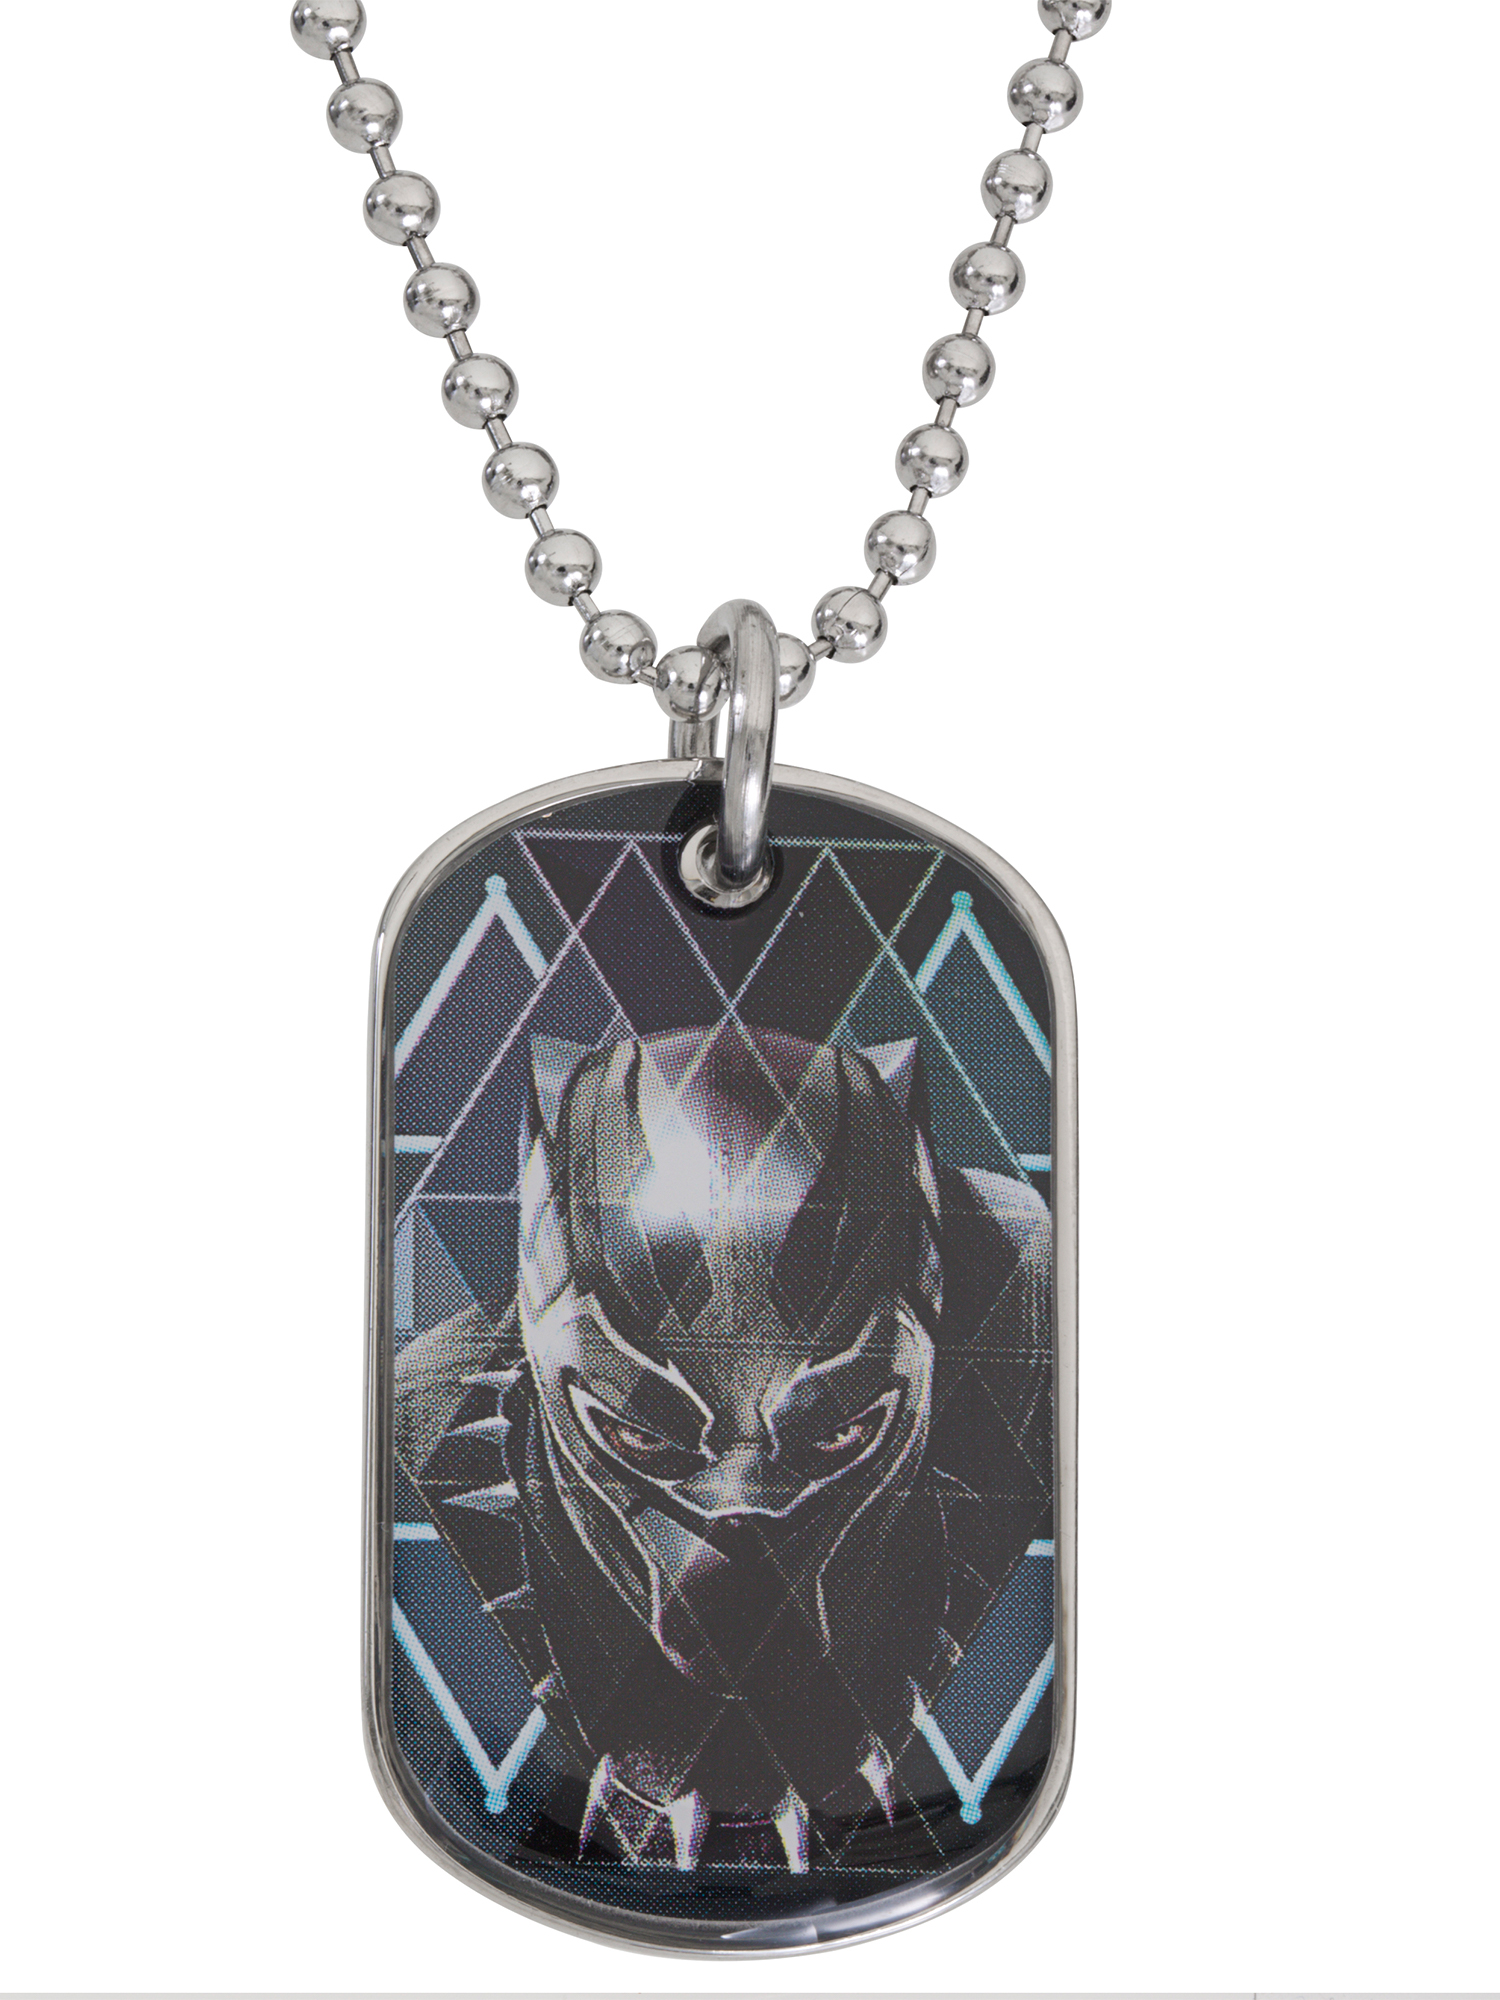 Black Panther Boys Stainless Steel Dog Tag Pendant, 20